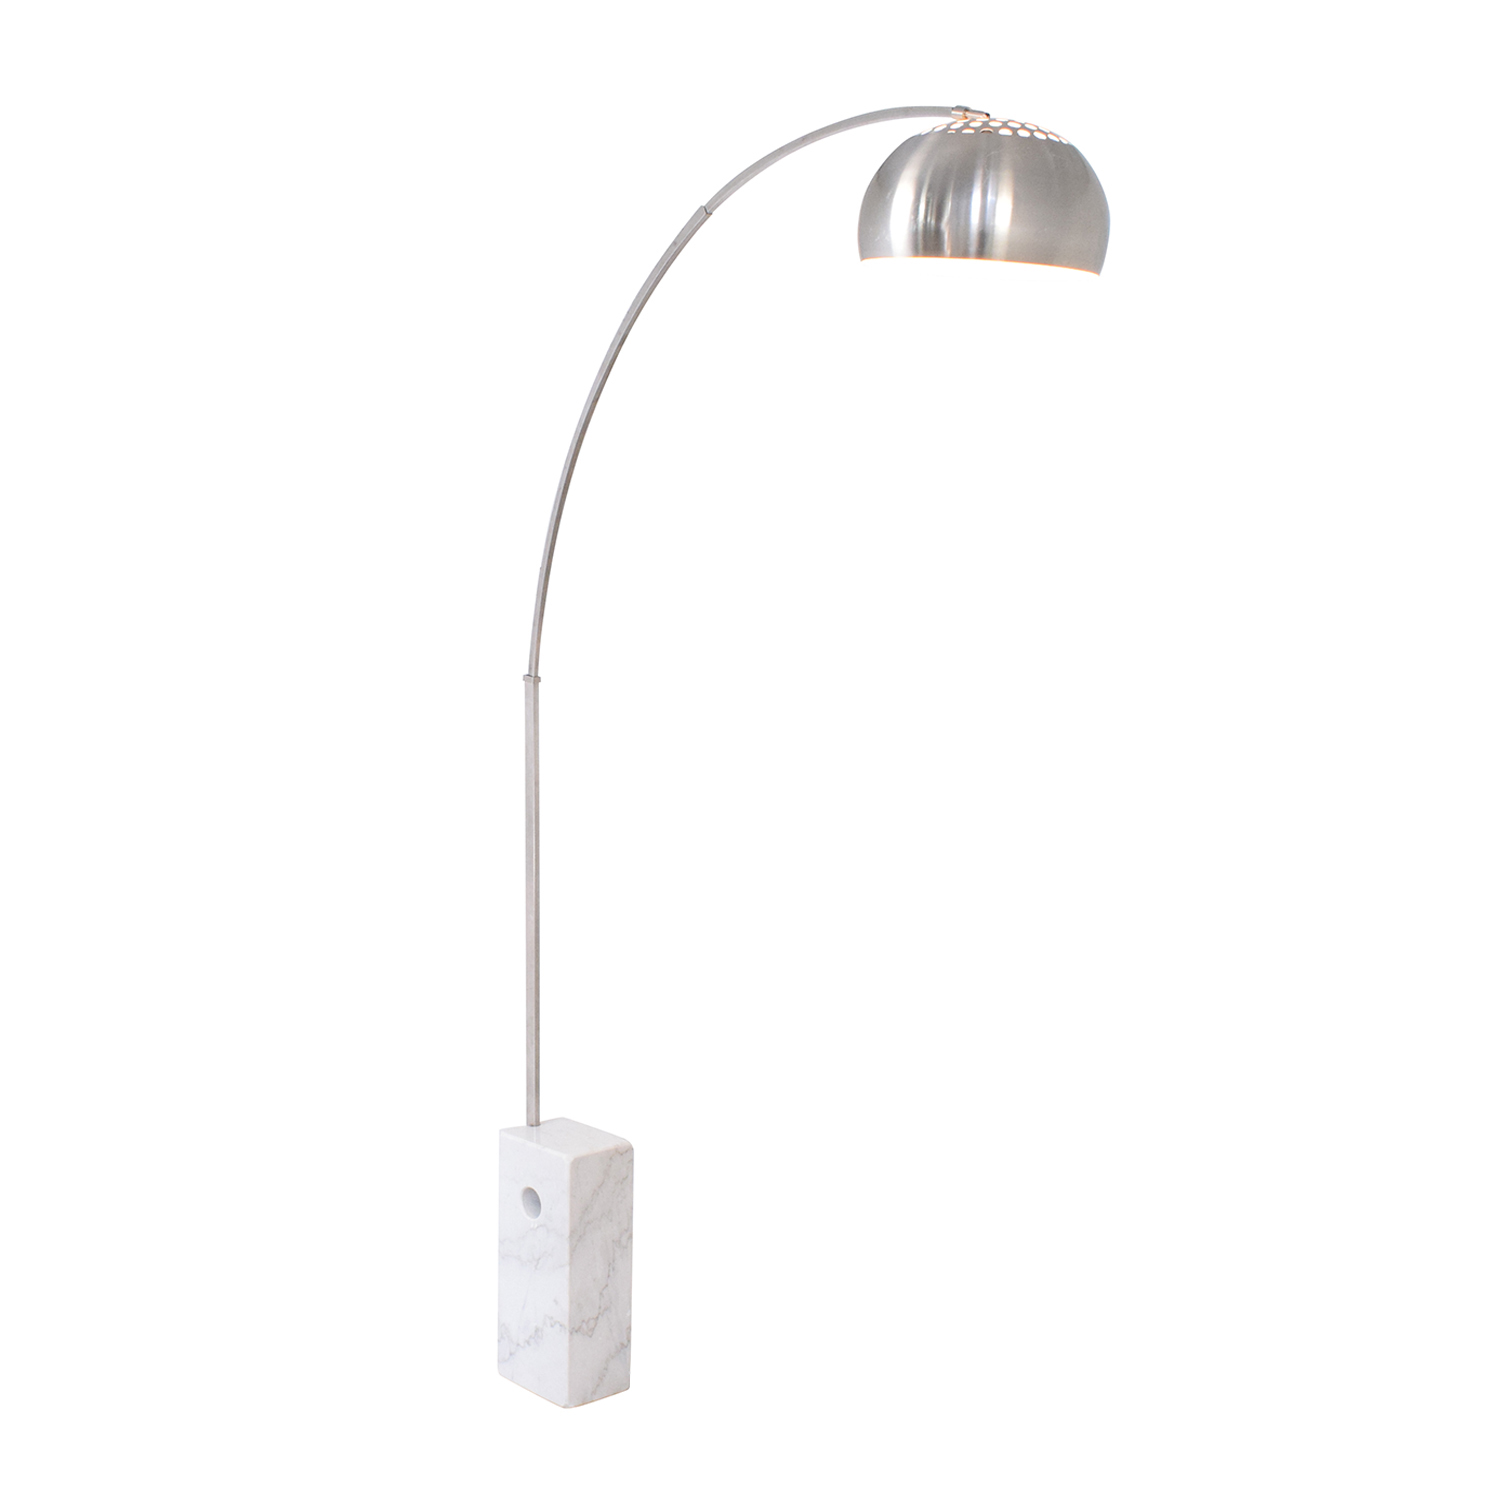 France and Son France and Son Mid Century Floor Lamp nyc